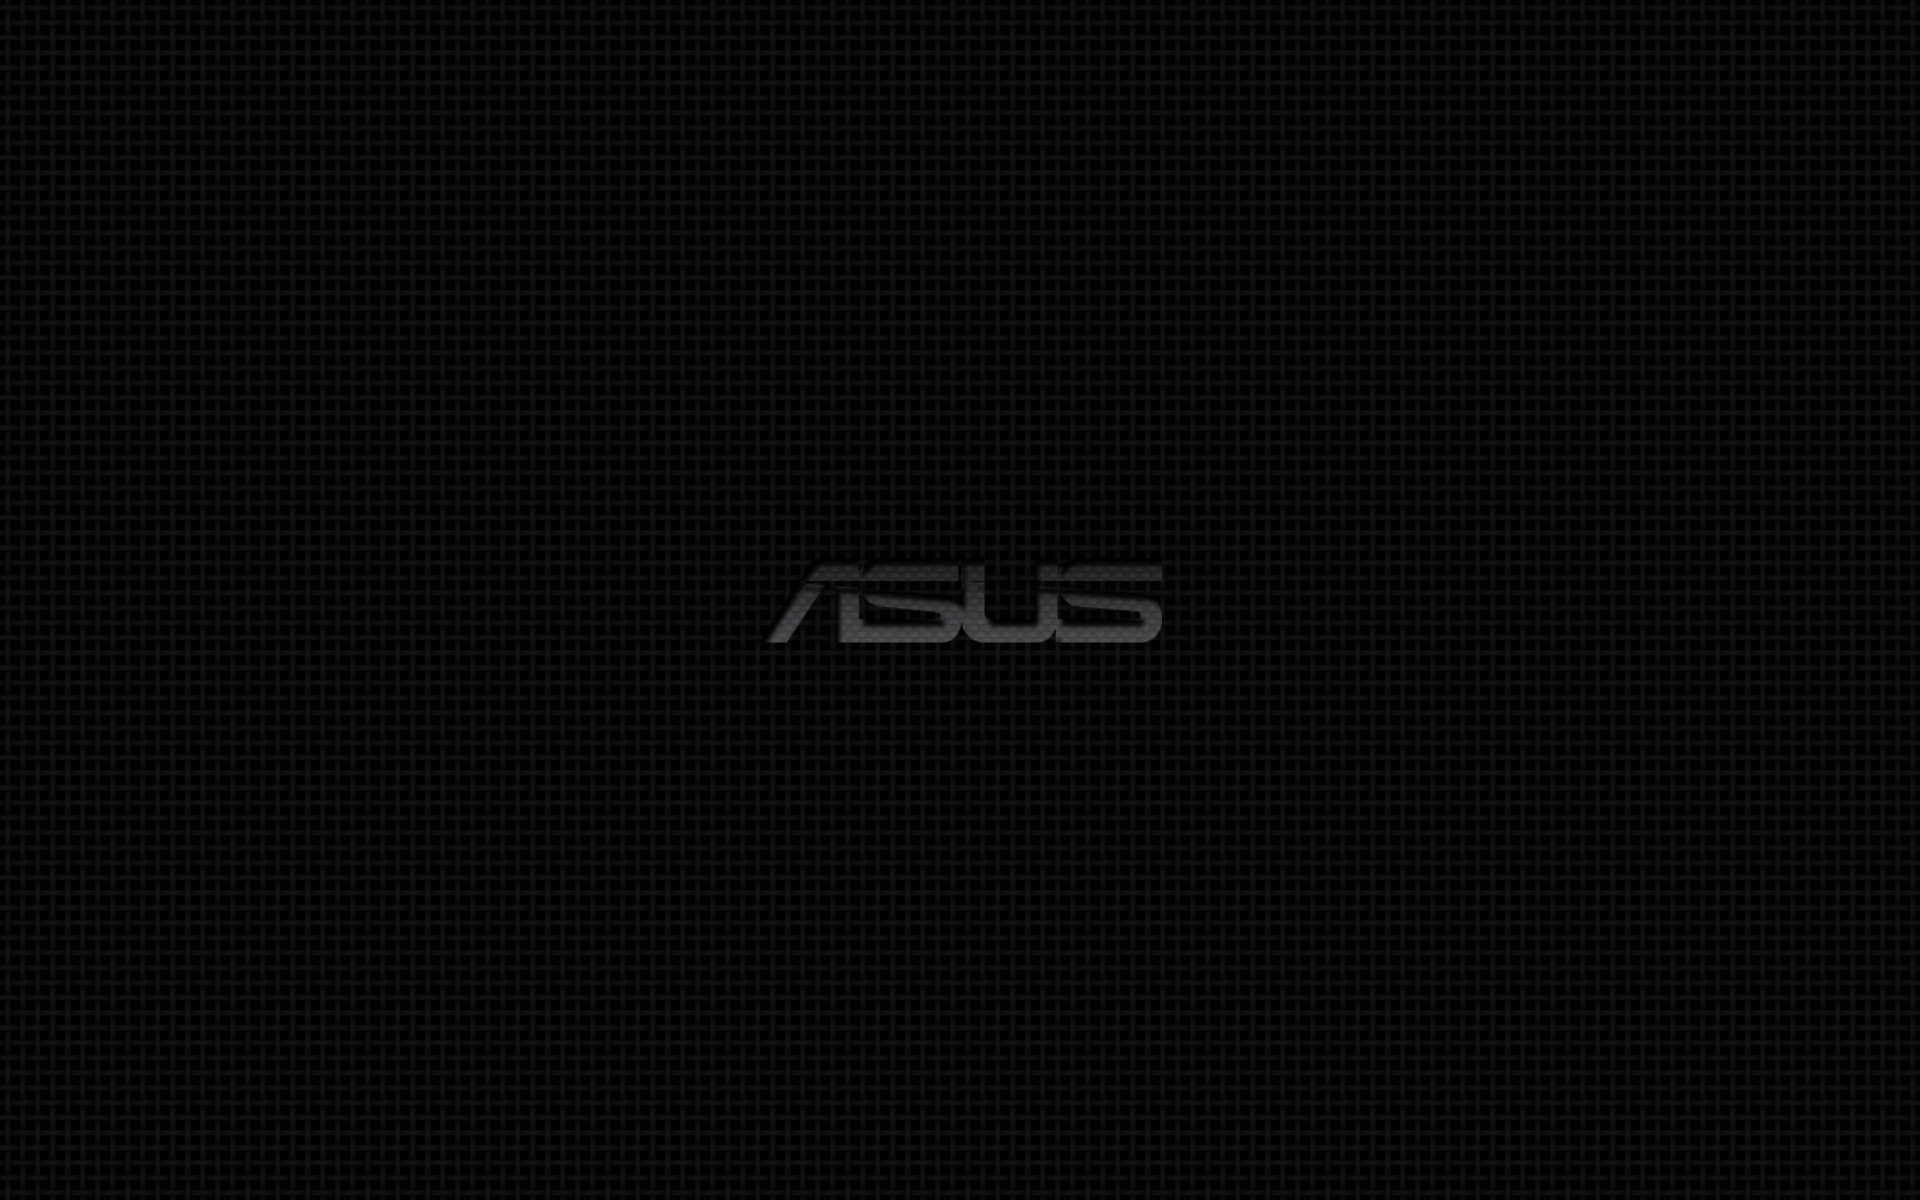 Asus Wallpaper Hd wallpaper   851683 1920x1200